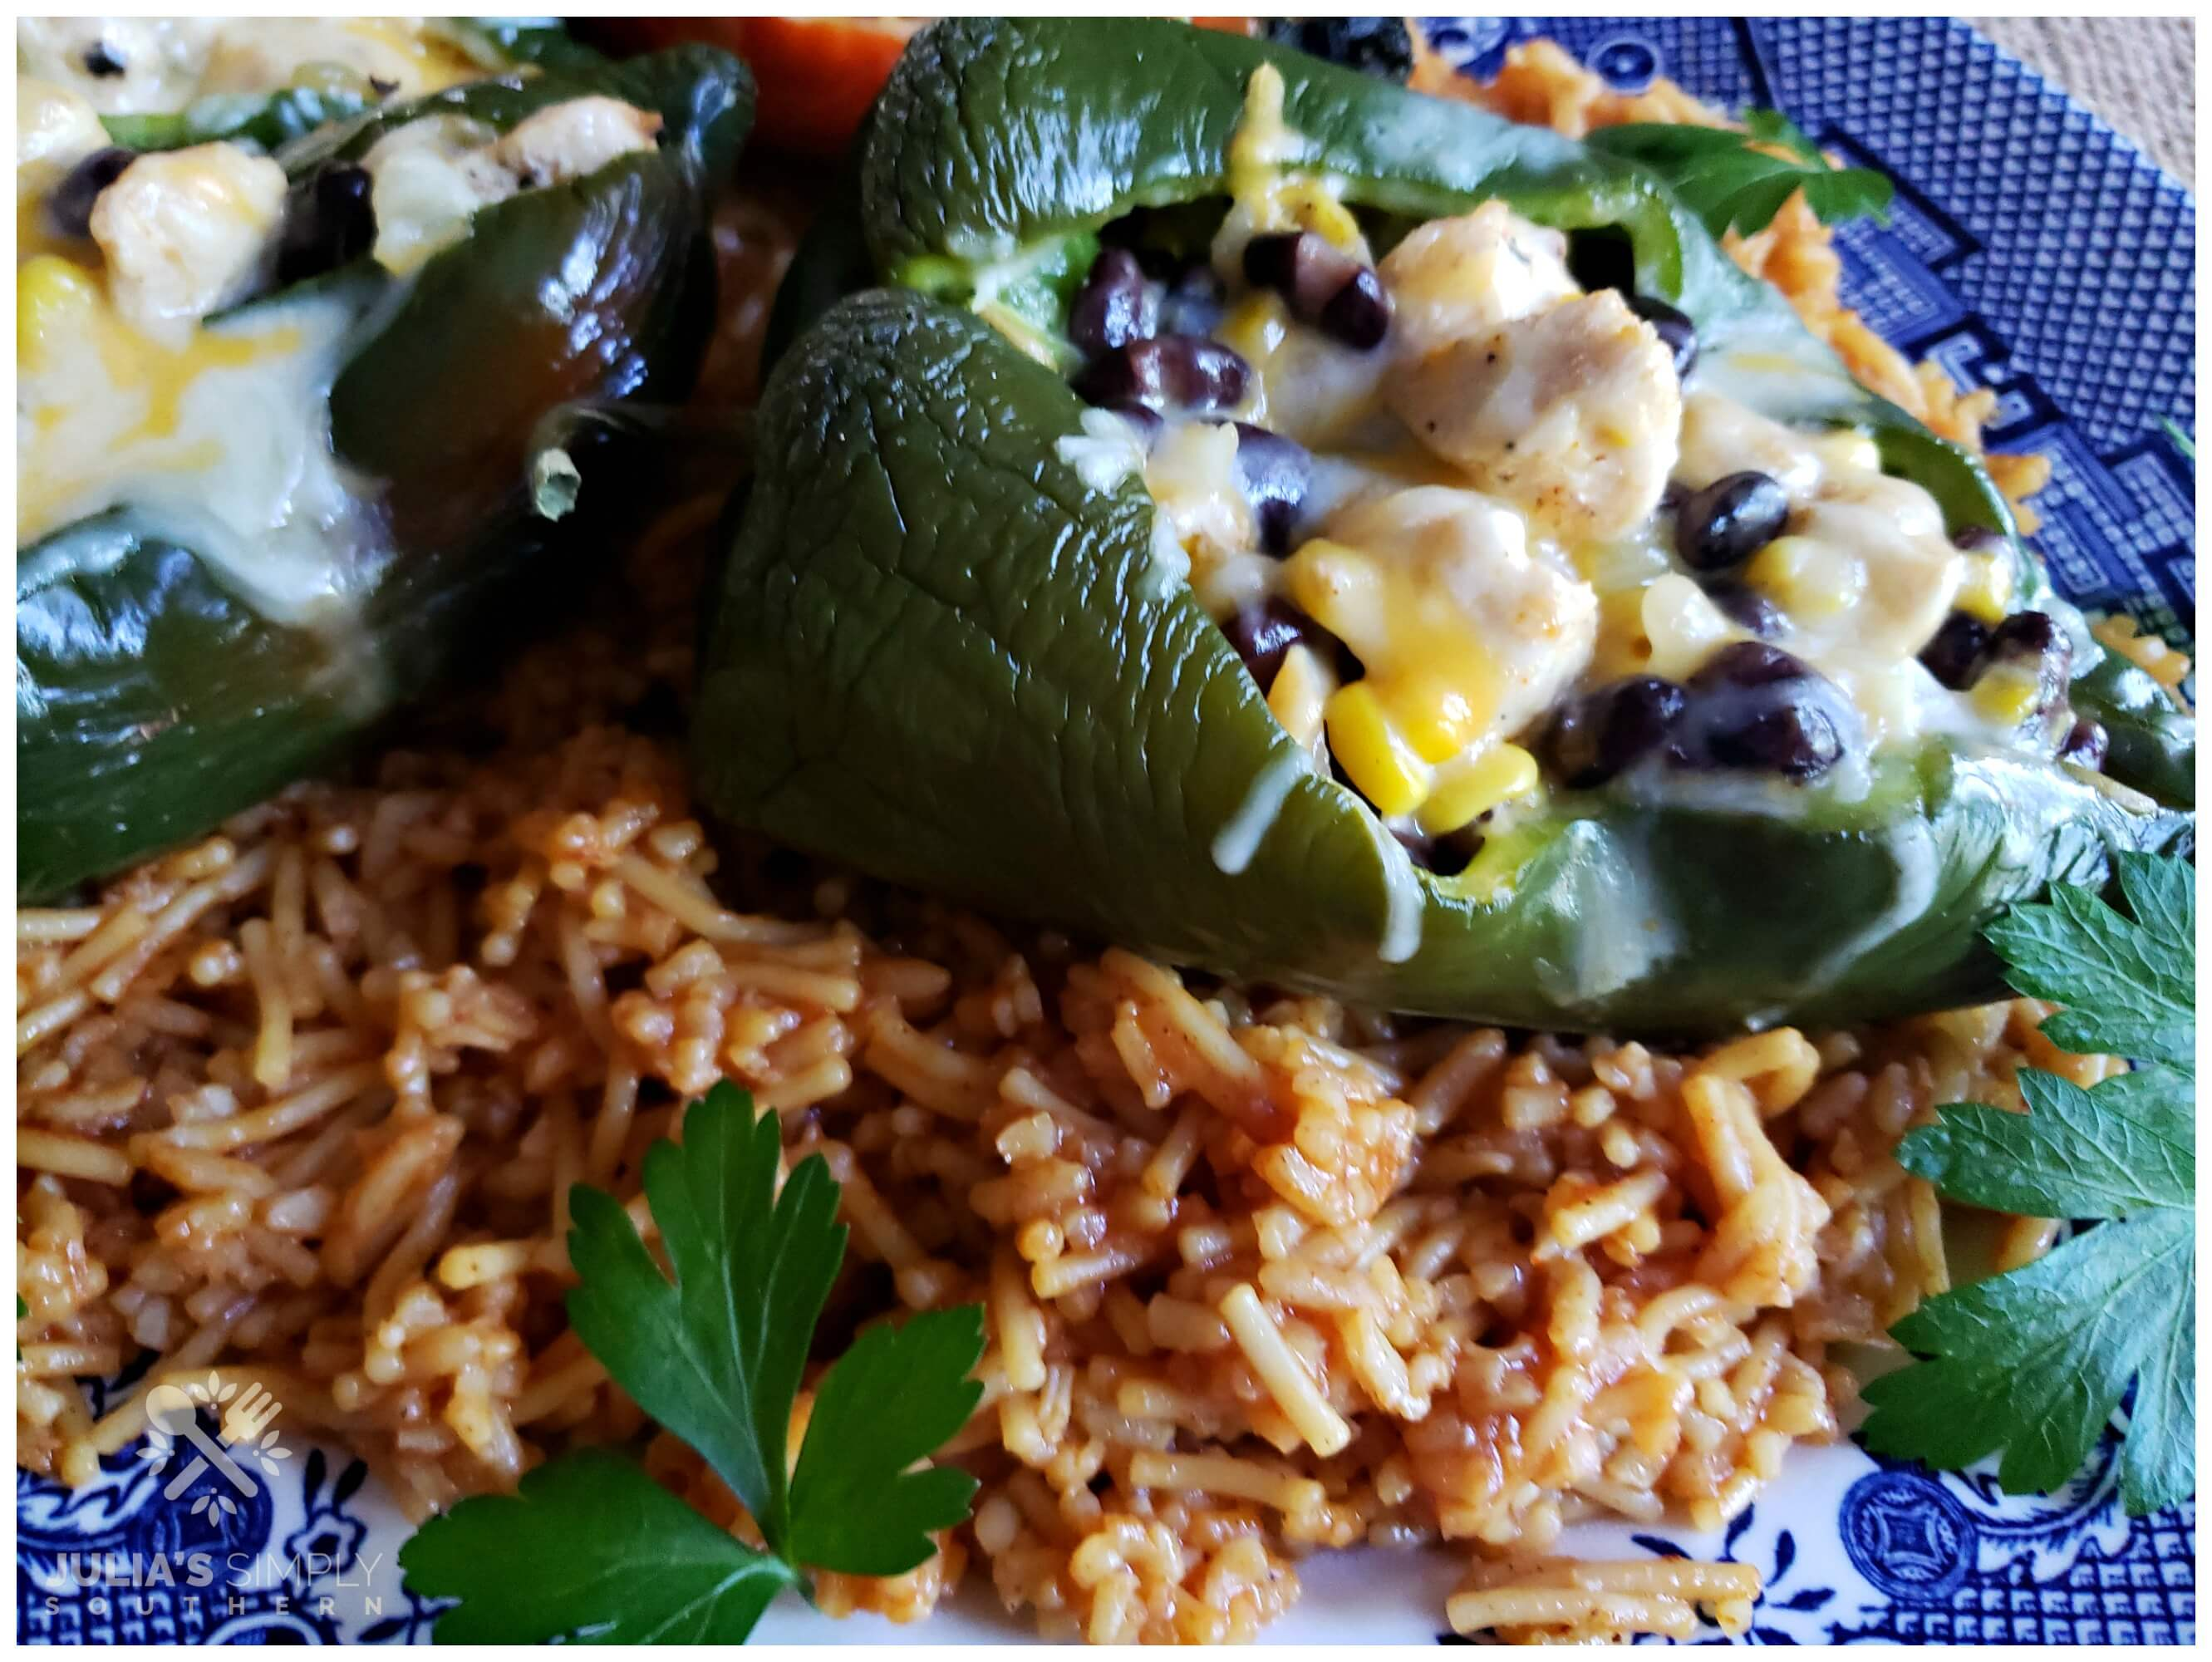 Spanish rice with stuffed poblano peppers are a delicious Southwestern style meal